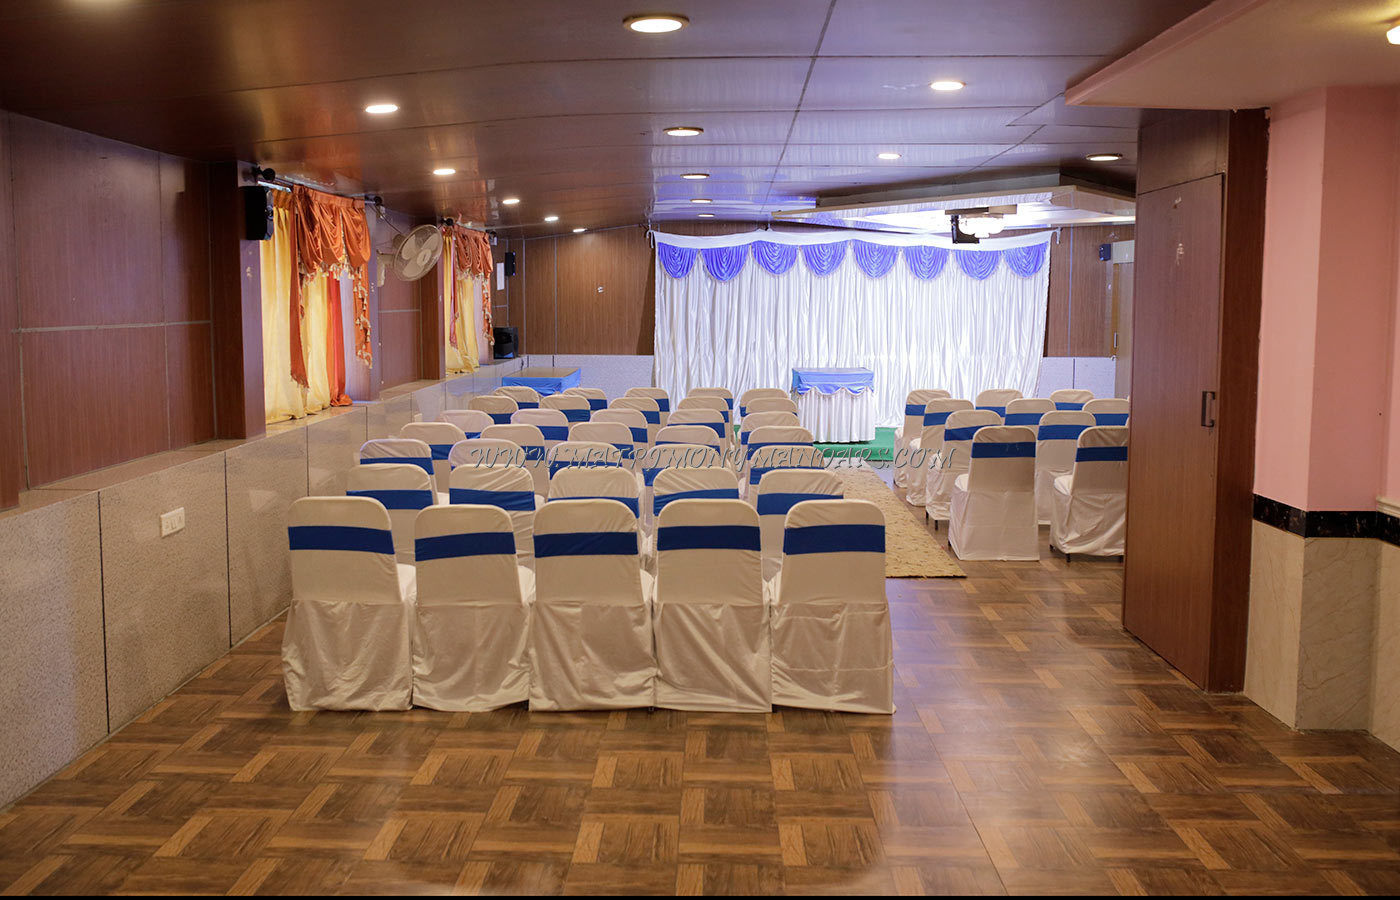 Find the availability of the Vinaya Party Hall (A/C) in JP Nagar, Bangalore and avail special offers